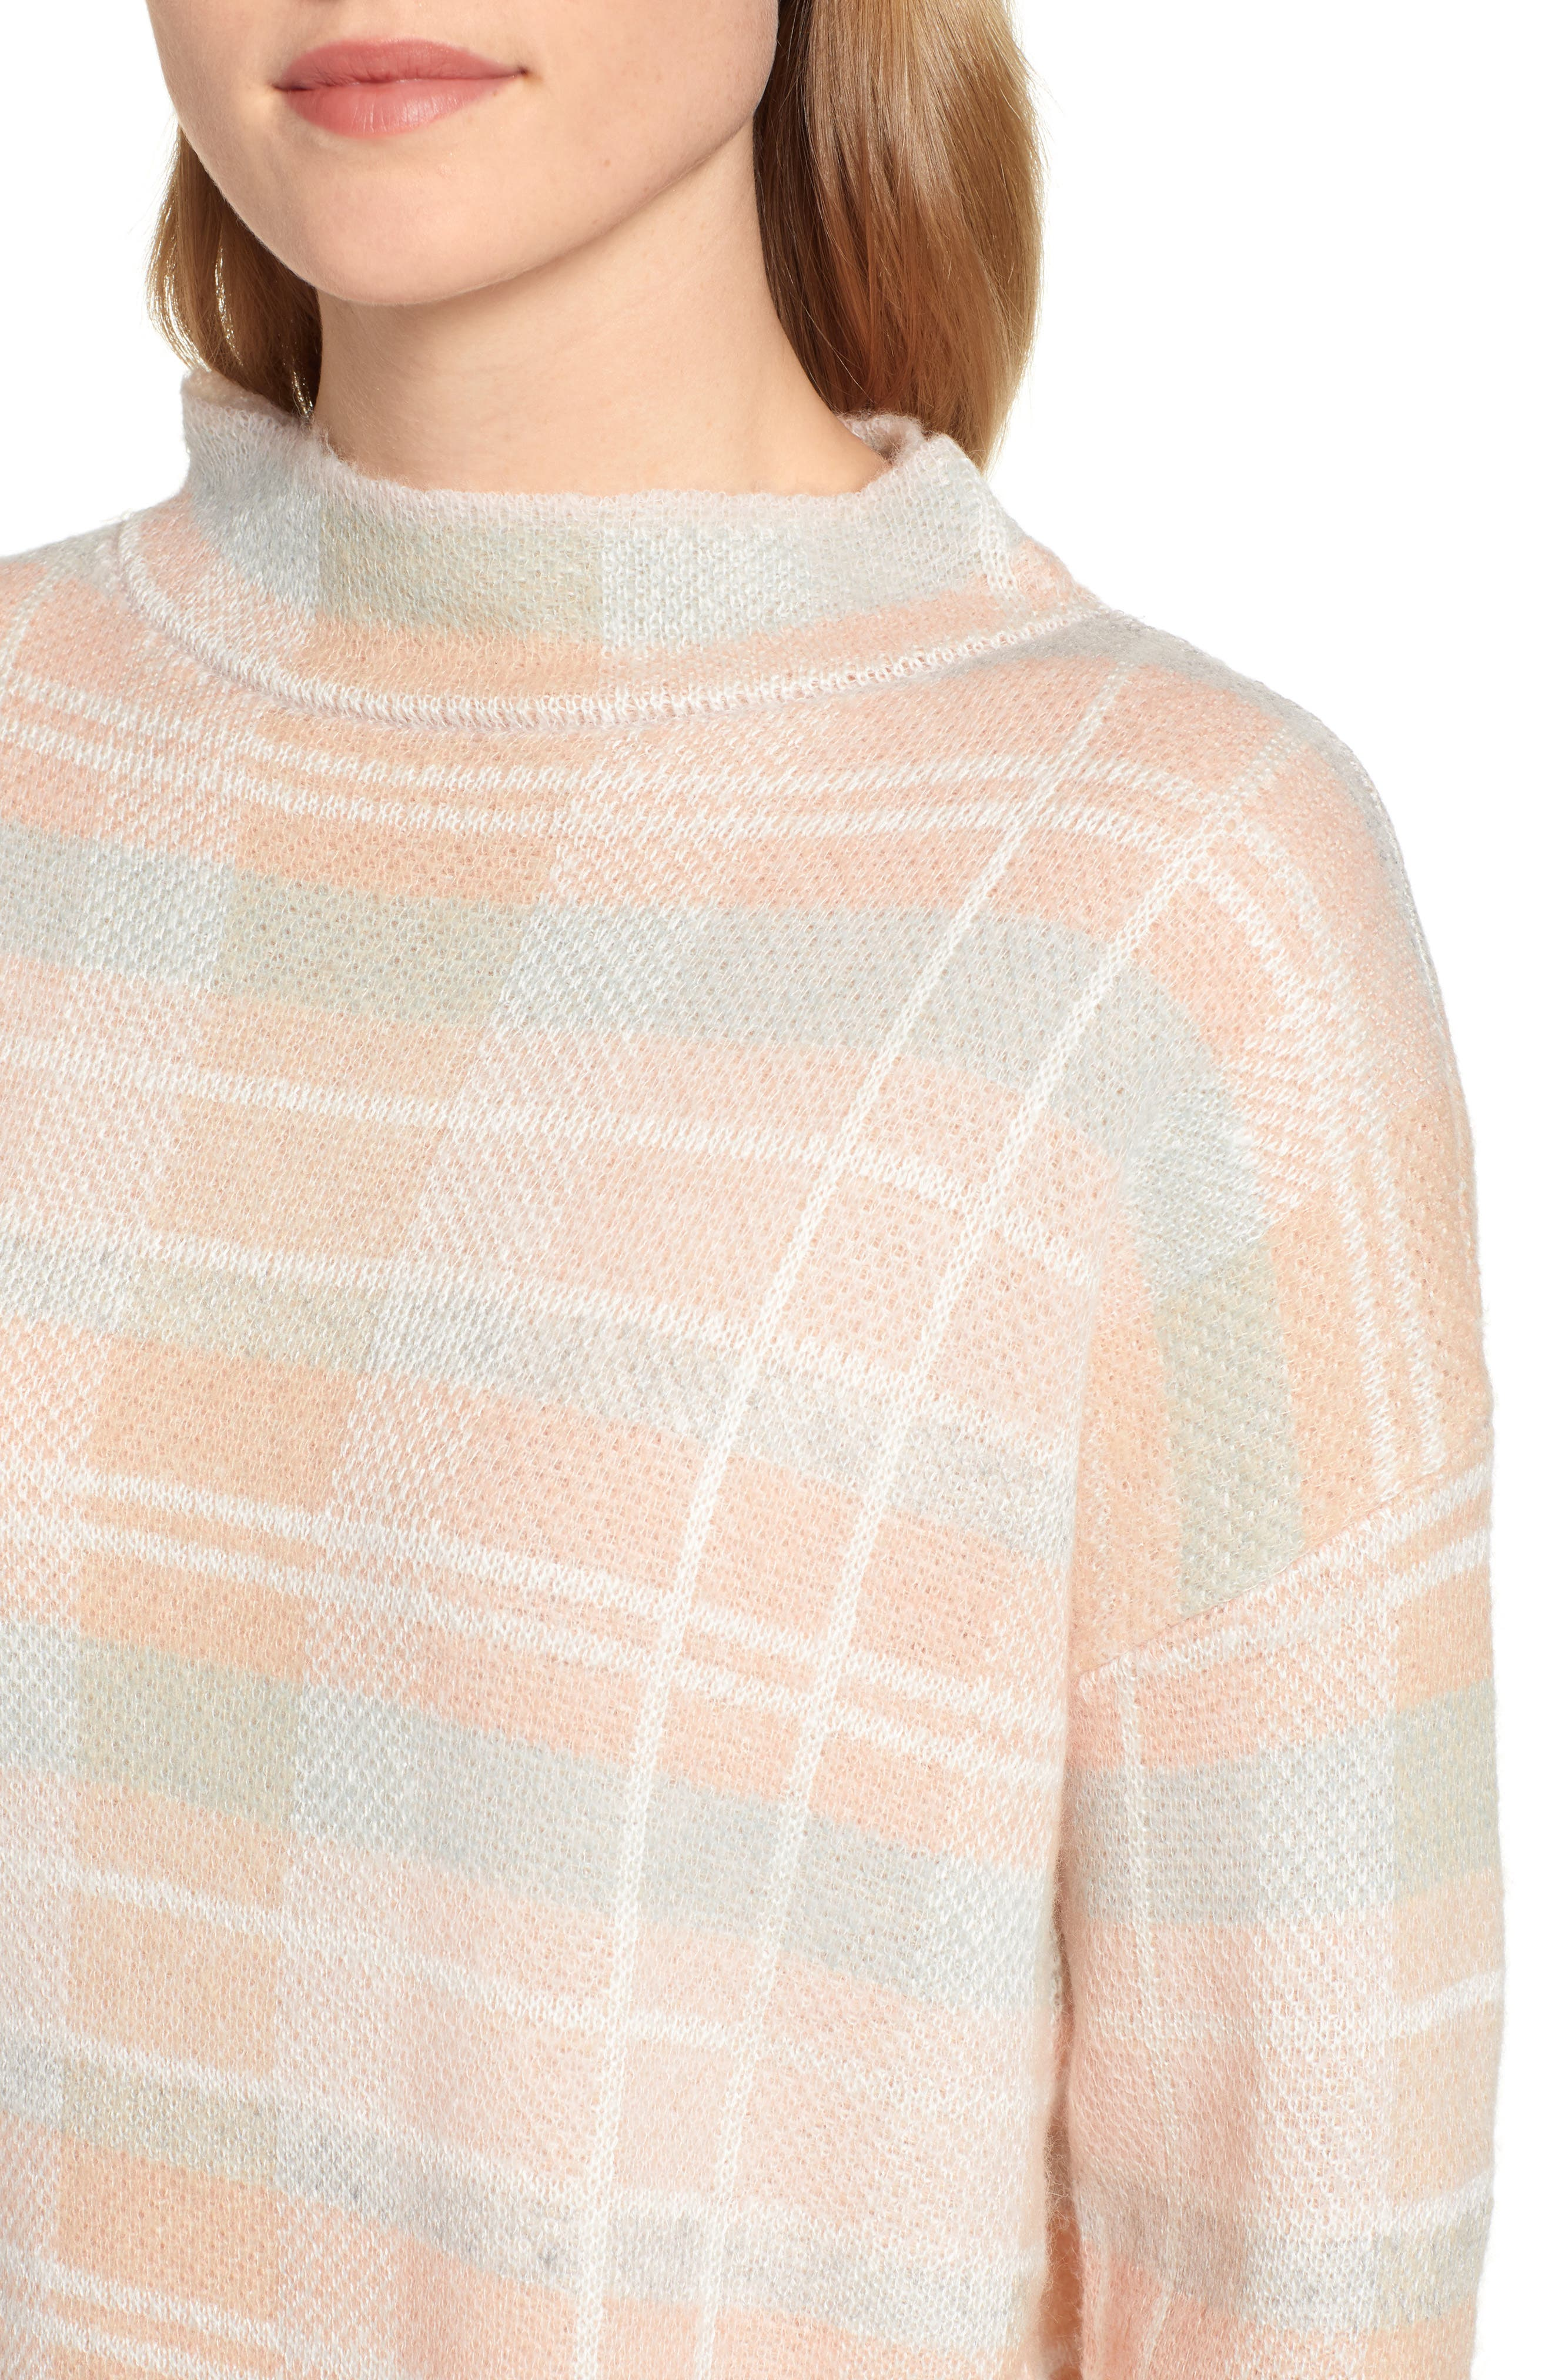 Plaid Mock Neck Sweater,                             Alternate thumbnail 4, color,                             PINK PLAID AS SWATCH